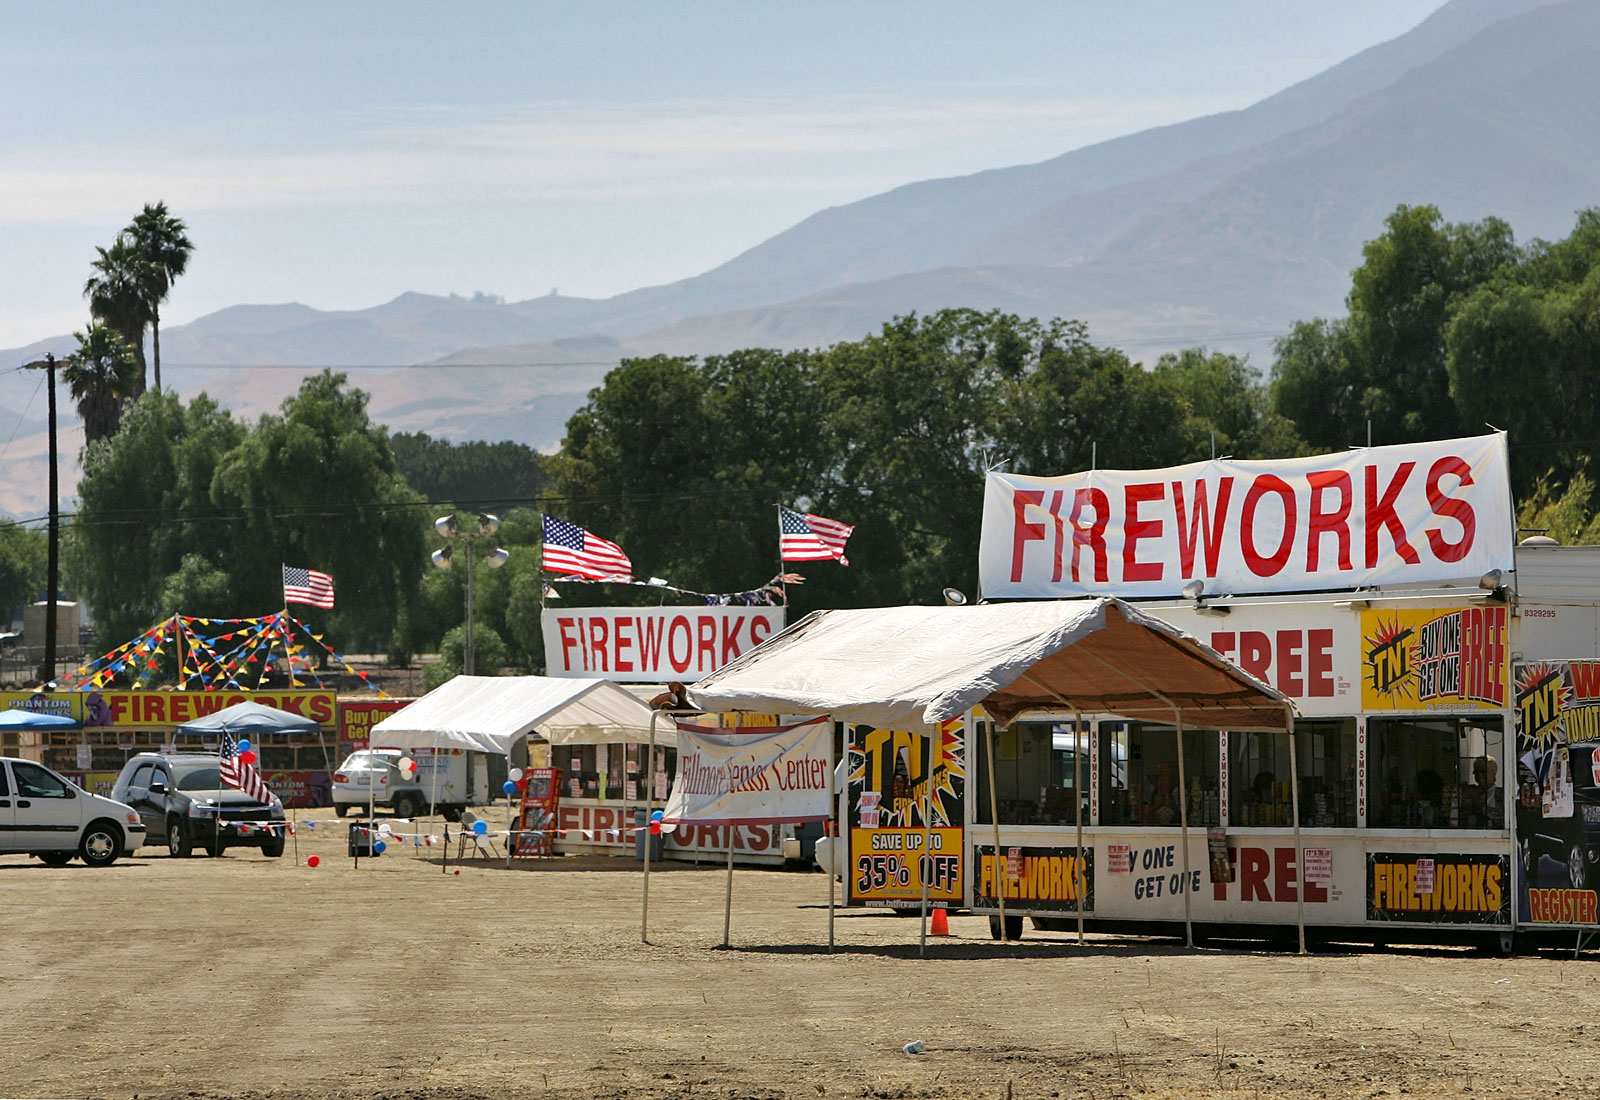 Fireworks being sold in California during a drought